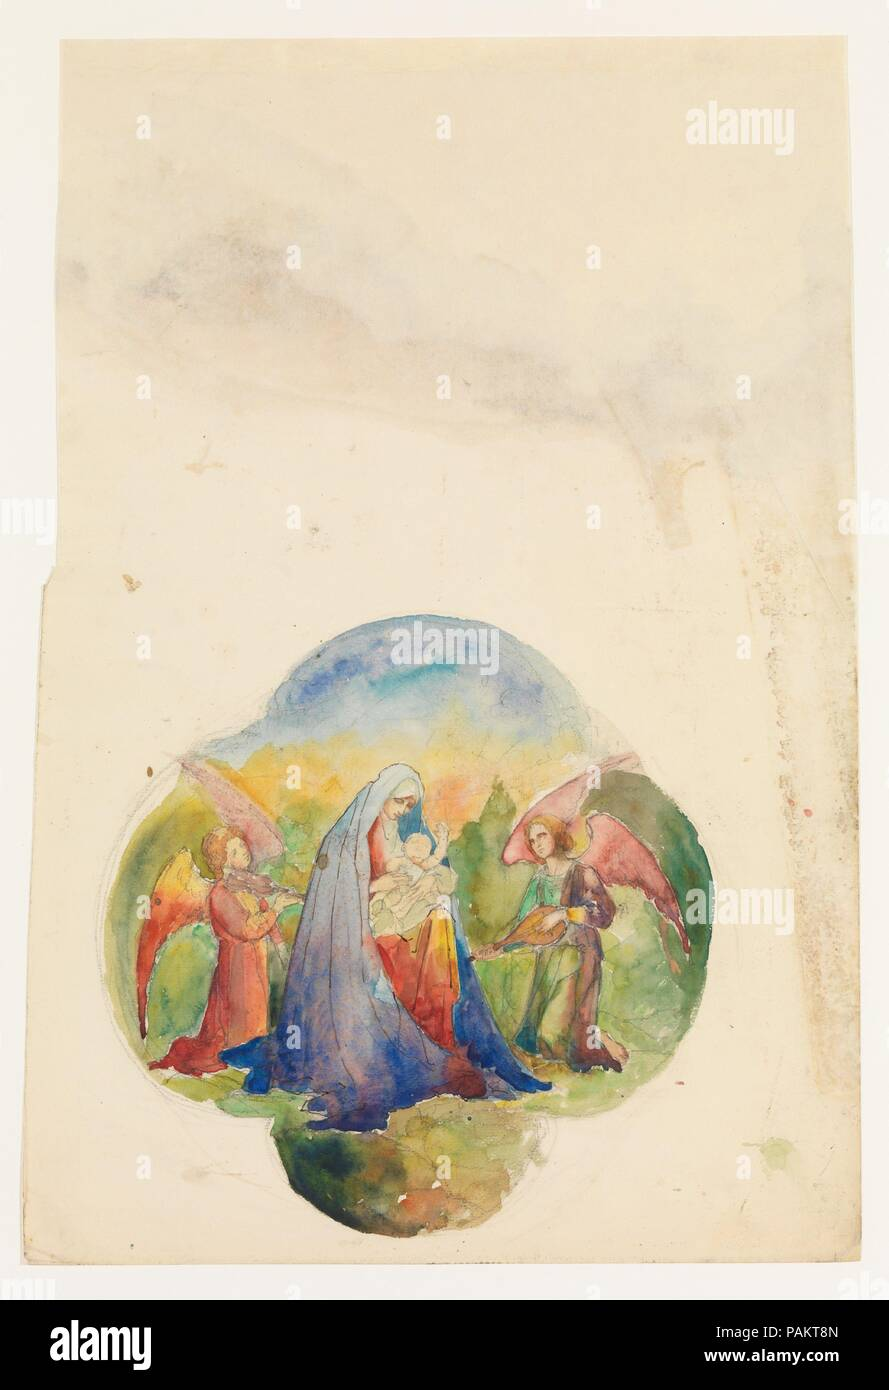 Design for quatrefoil window. Artist: Louis Comfort Tiffany (American, New York 1848-1933 New York). Culture: American. Dimensions: Overall: 21 3/4 x 14 13/16 in. (55.2 x 37.6 cm)  Other (Design): 11 x 11 in. (27.9 x 27.9 cm). Maker: Possibly Tiffany Glass and Decorating Company (American, 1892-1902); Possibly Tiffany Studios (1902-32); Possibly Tiffany Glass Company (1885-92). Date: late 19th-early 20th century. Museum: Metropolitan Museum of Art, New York, USA. - Stock Image